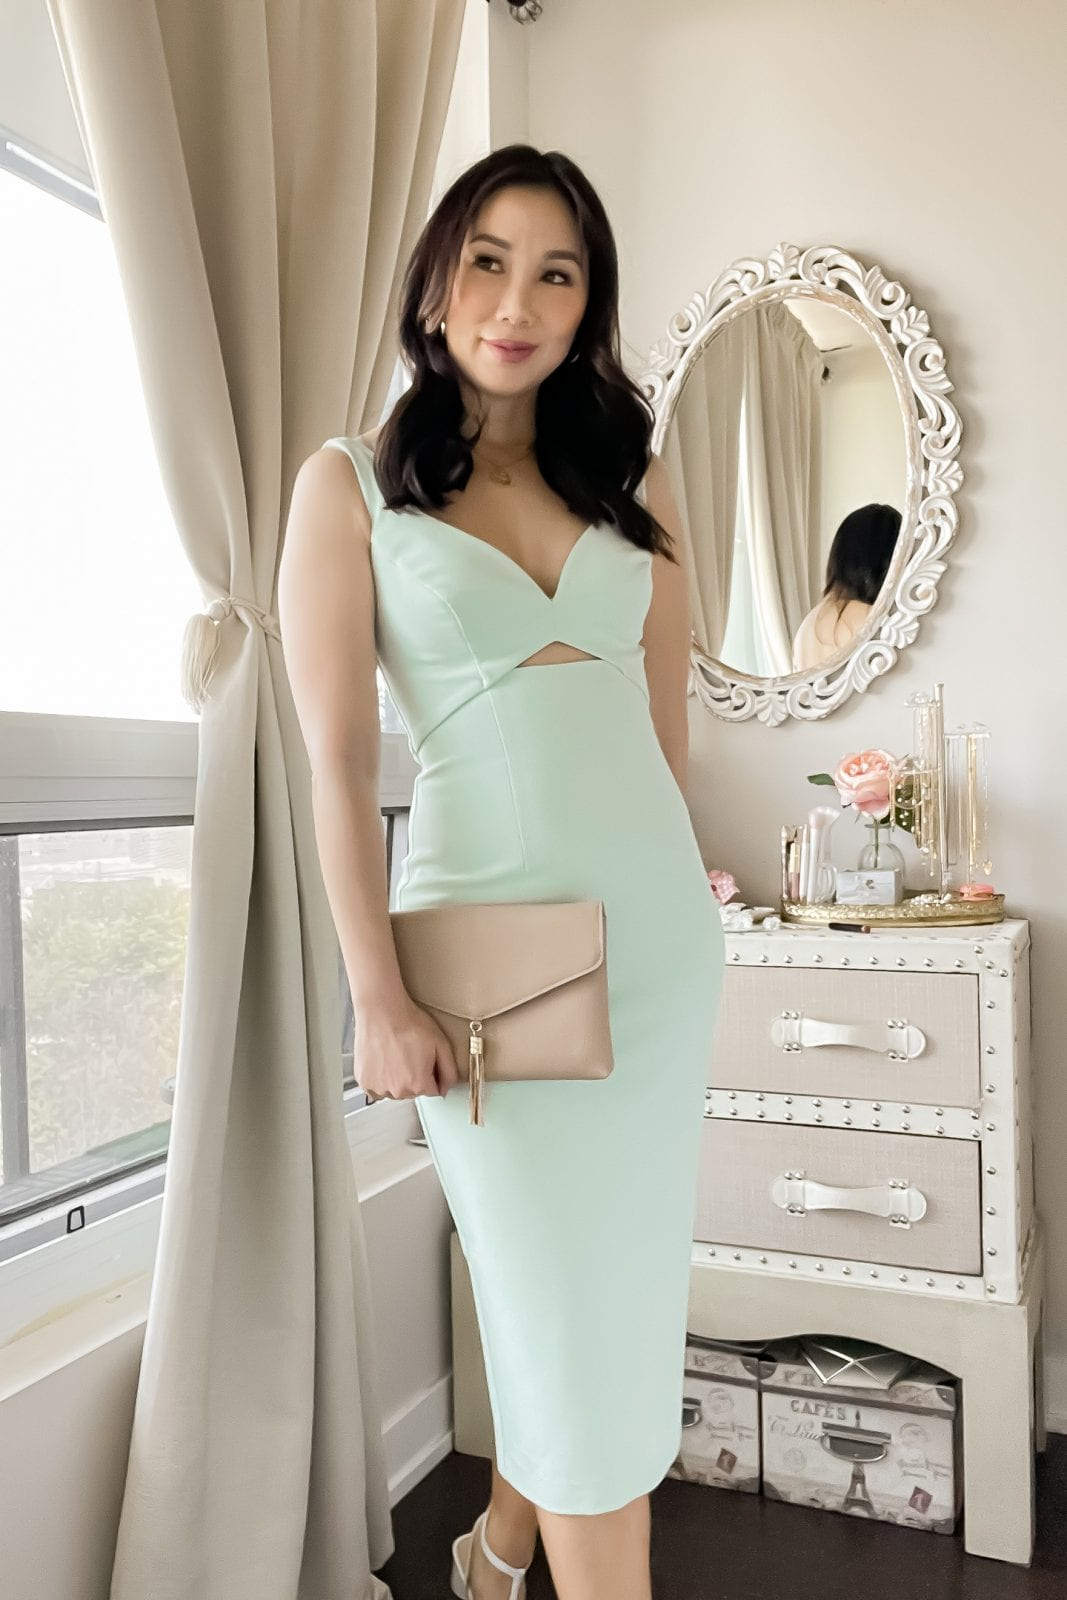 This sleek cocktail dress with cut out detail will have you looking like the best dressed guest at your next summer wedding. Check out more outfit ideas on yesmissy.com